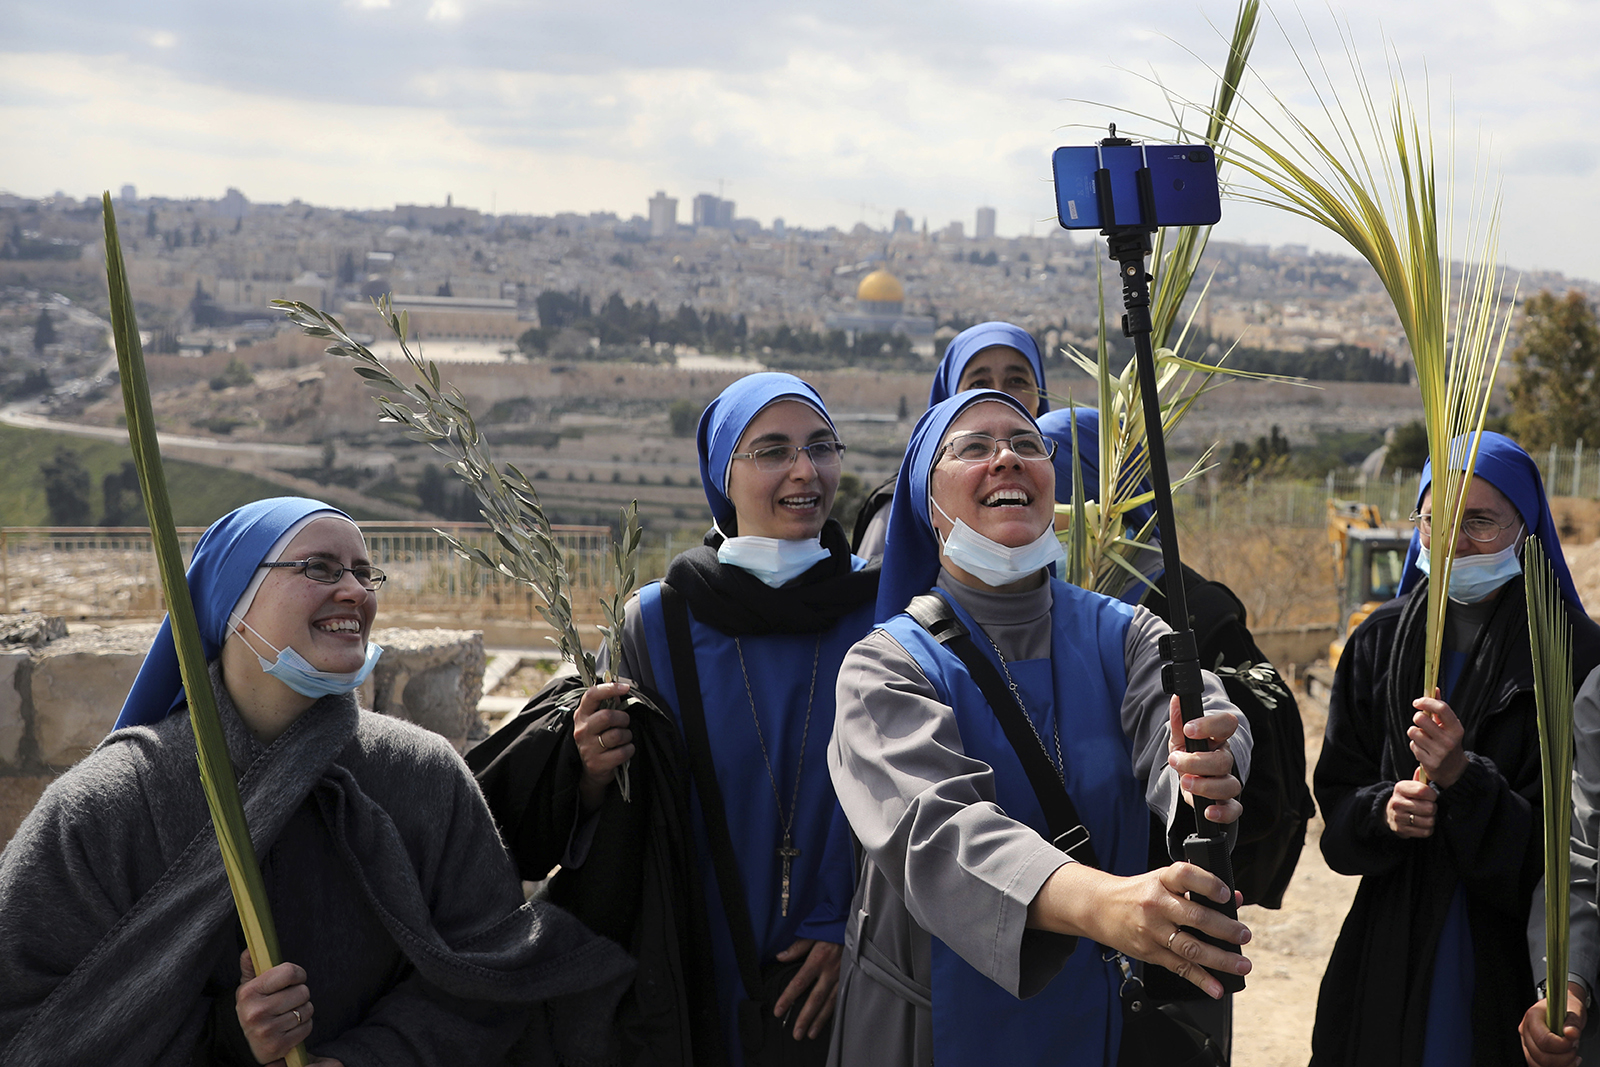 Nuns pose for a selfie as they mark Palm Sunday on the Mount of Olives in Jerusalem, Sunday, March 28, 2021. A year after coronavirus restrictions halted mass gatherings, many Christians are celebrating Holy Week together in 2021. (AP Photo/Mahmoud Illean)